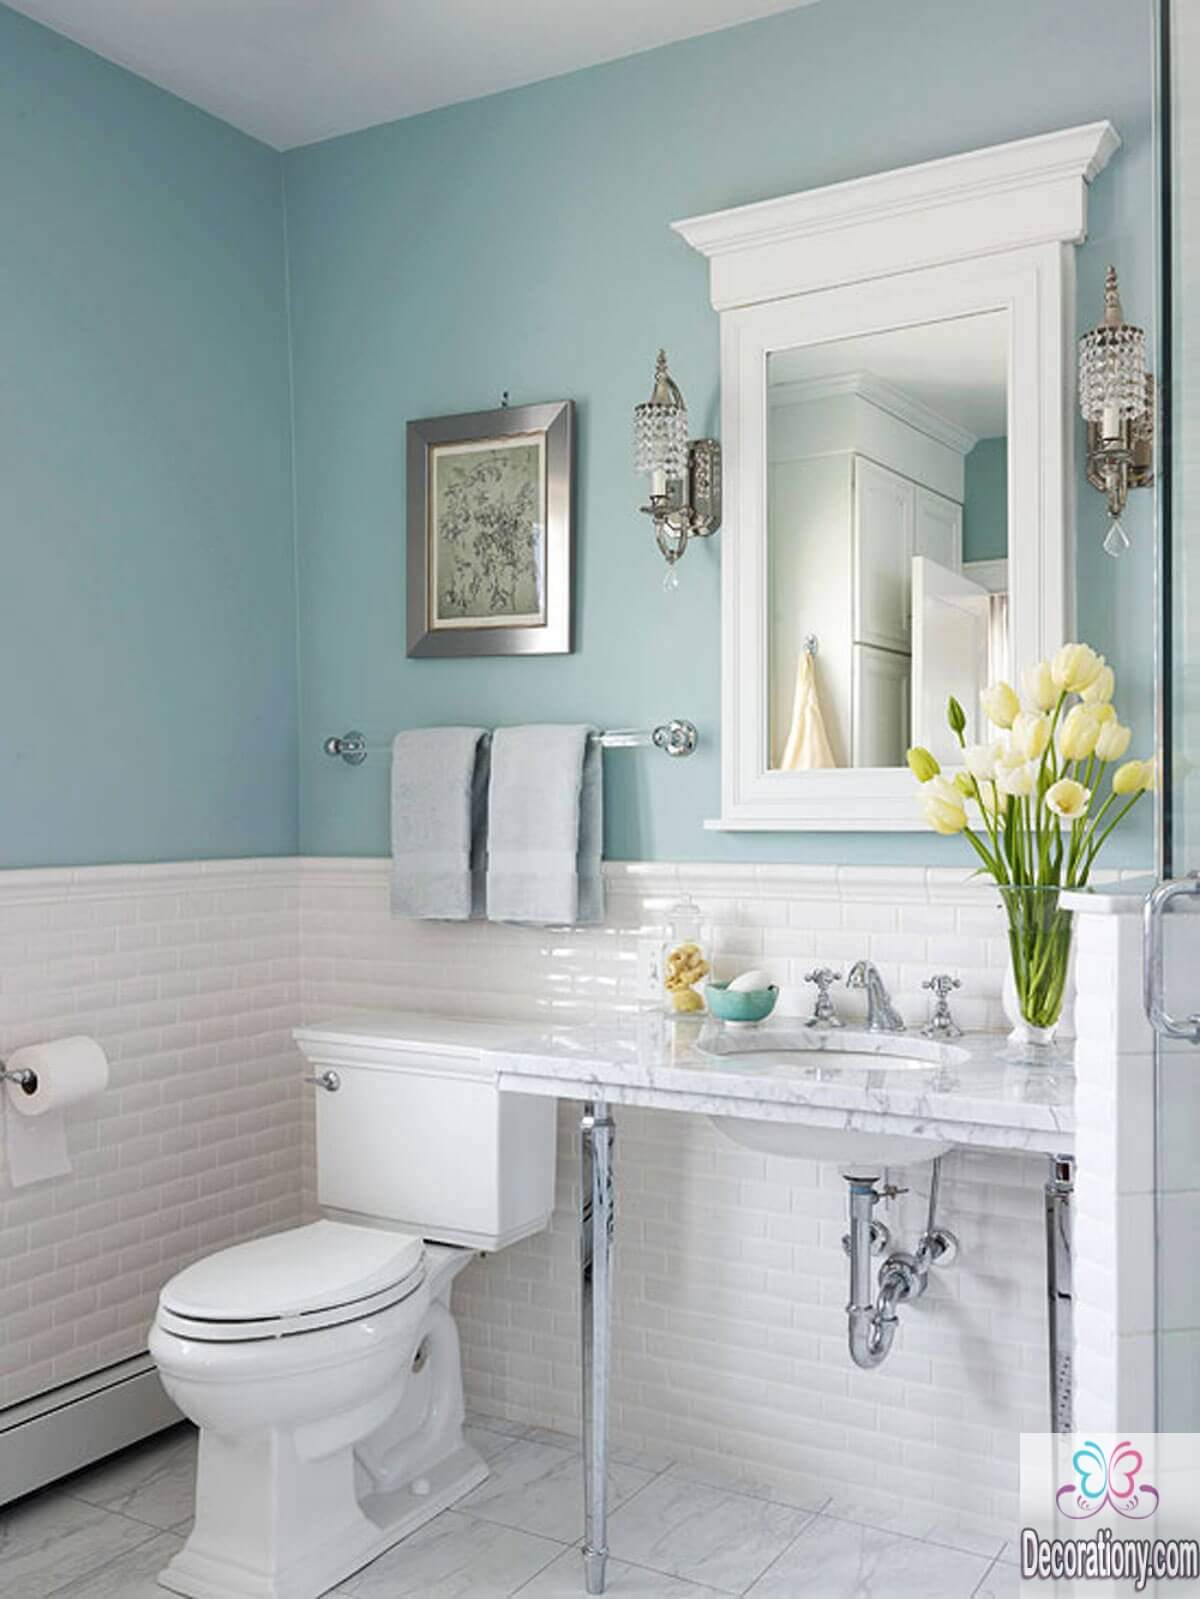 10 affordable colors for small bathrooms decoration y ForBathroom Designs And Colours